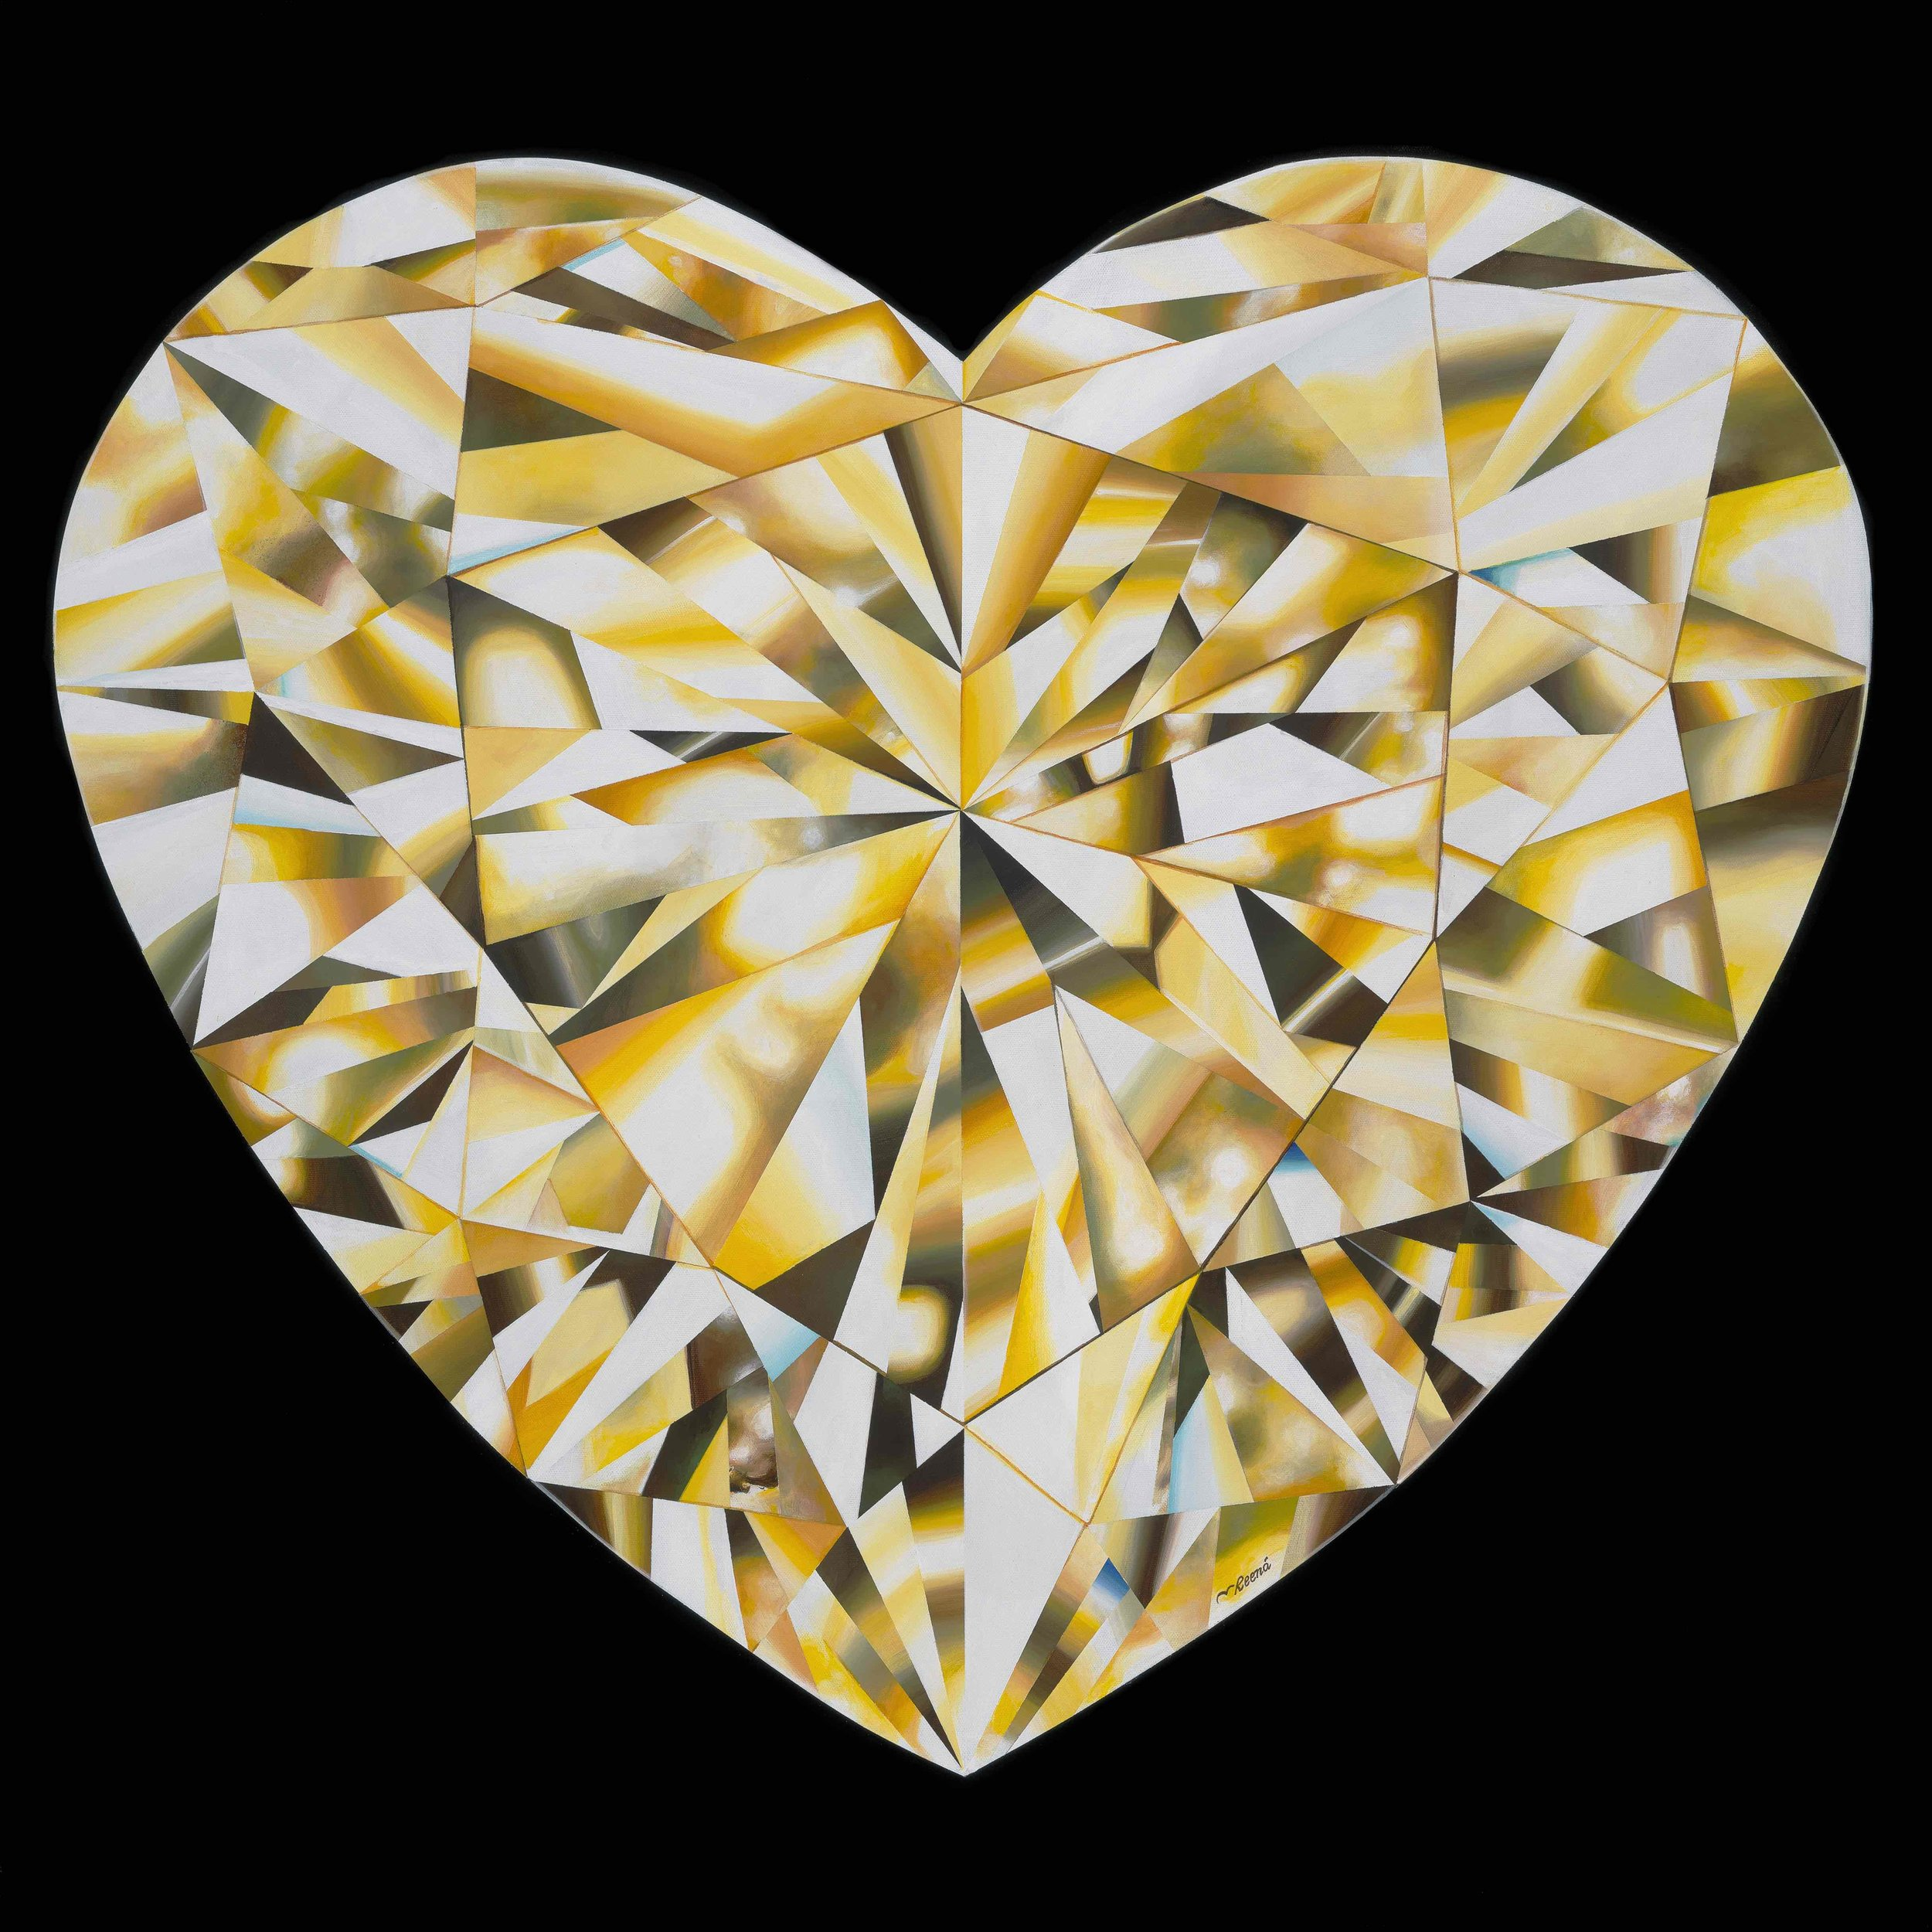 'Heart of Gold' - Portrait of a Yellow Heart-Shaped Diamond. 36 x 36 inches. Acrylic on Canvas. ©Reena Ahluwalia.    More about the painting and process here   .